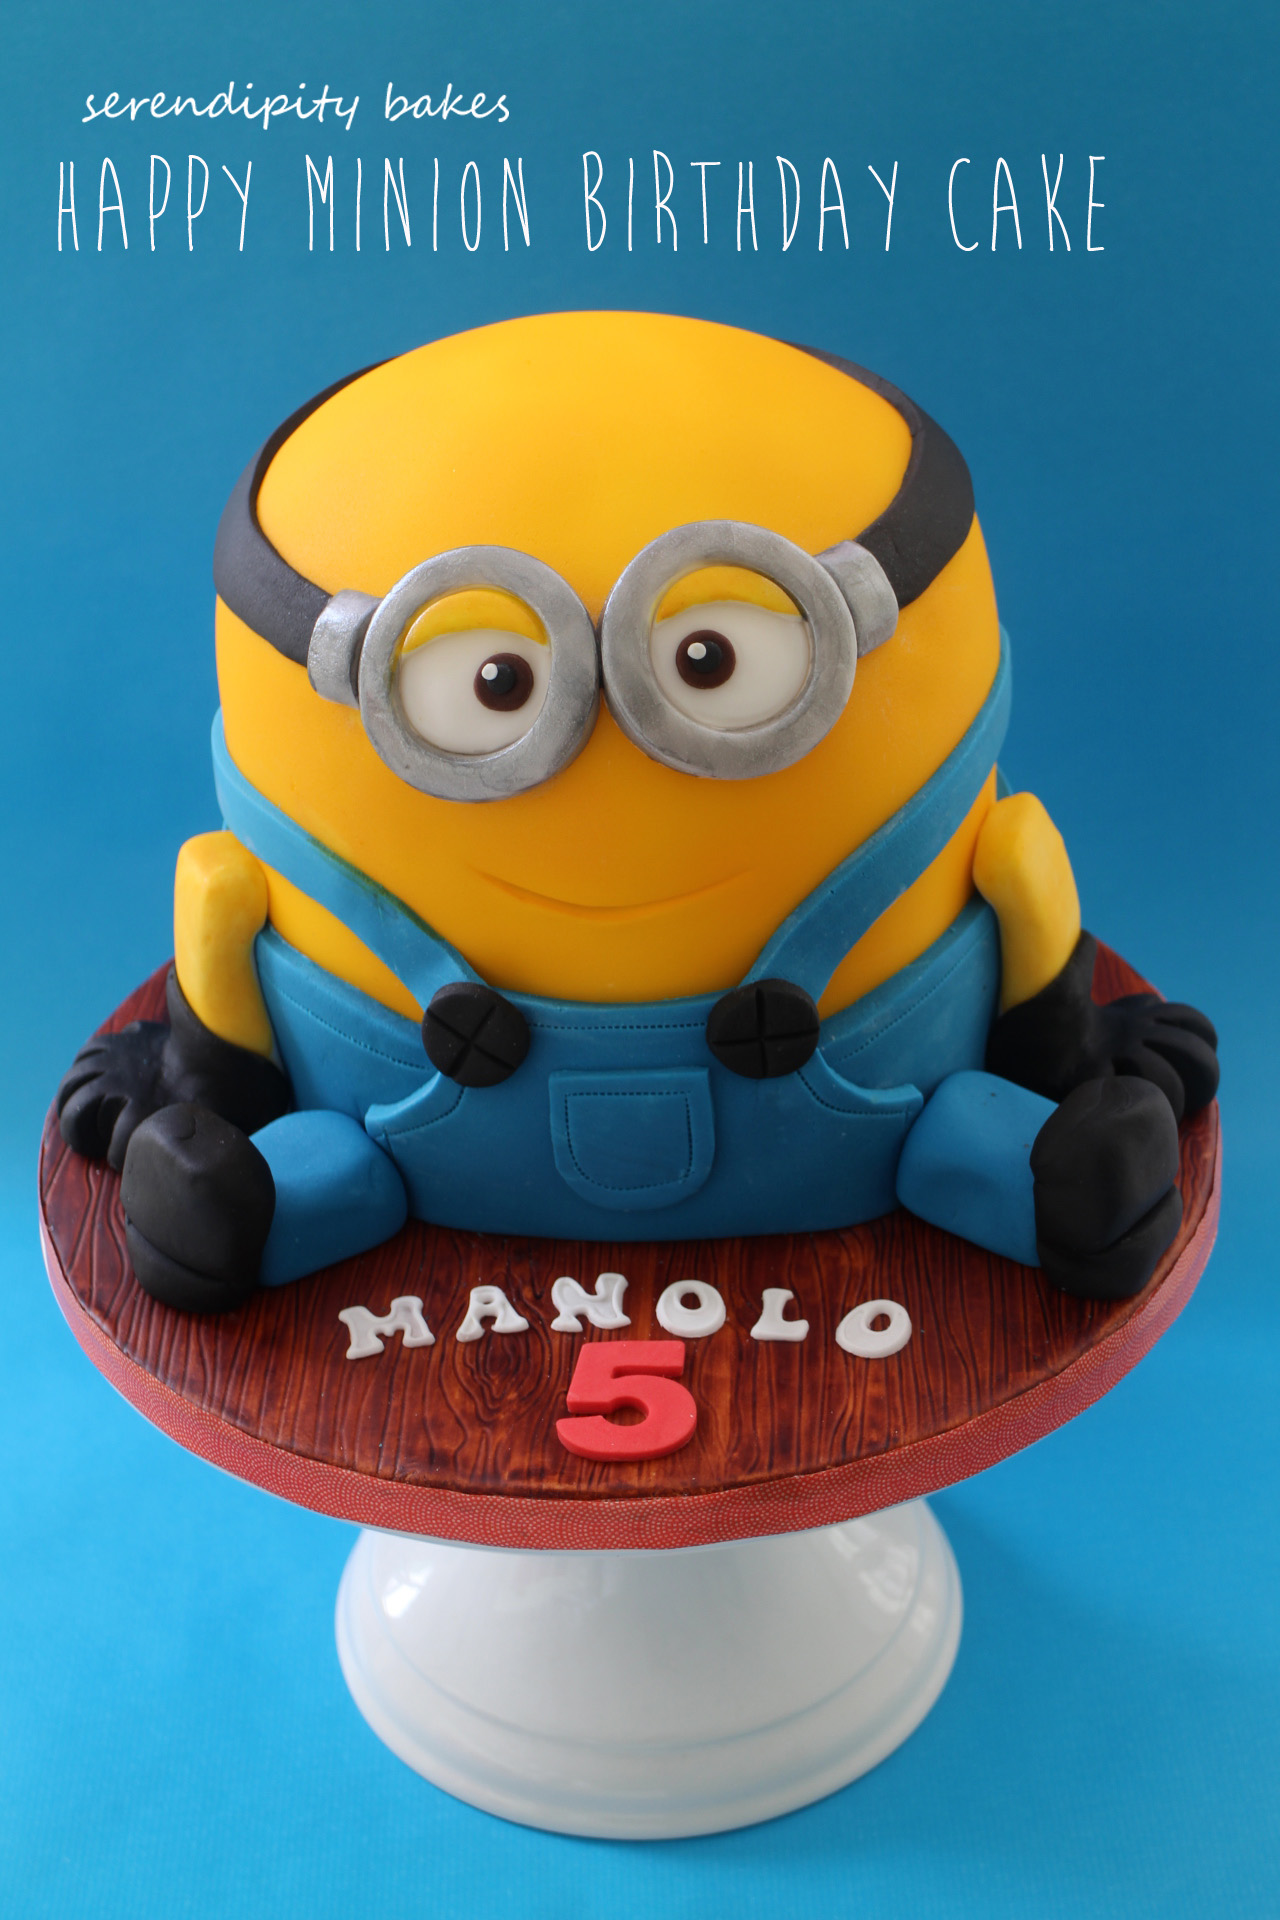 Happy Minion Birthday Cake Serendipity Bakes